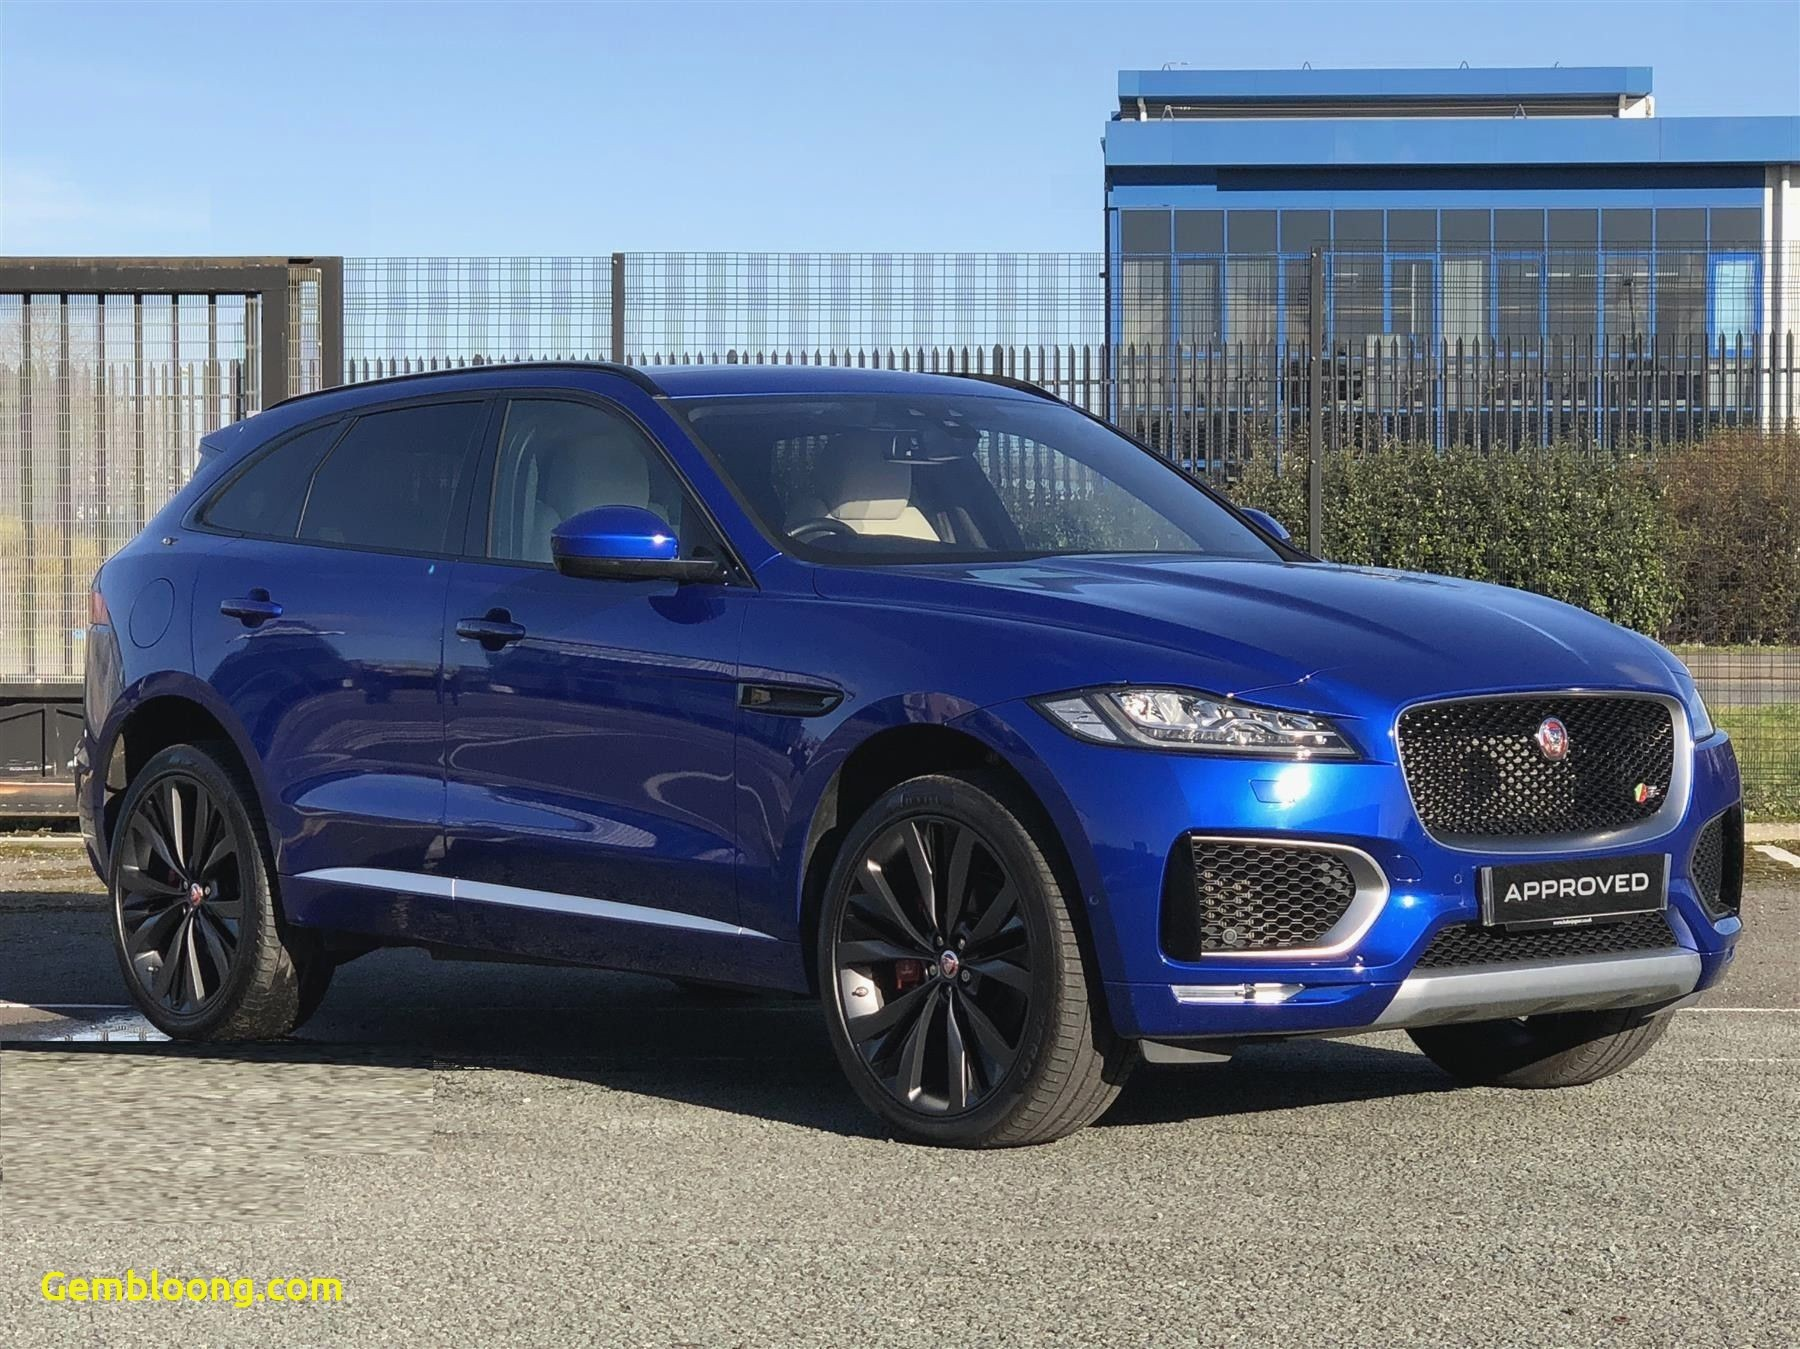 Used Car Prices Fresh All Used Cars for Sale Awesome Best Used 2016 Jaguar F Pace